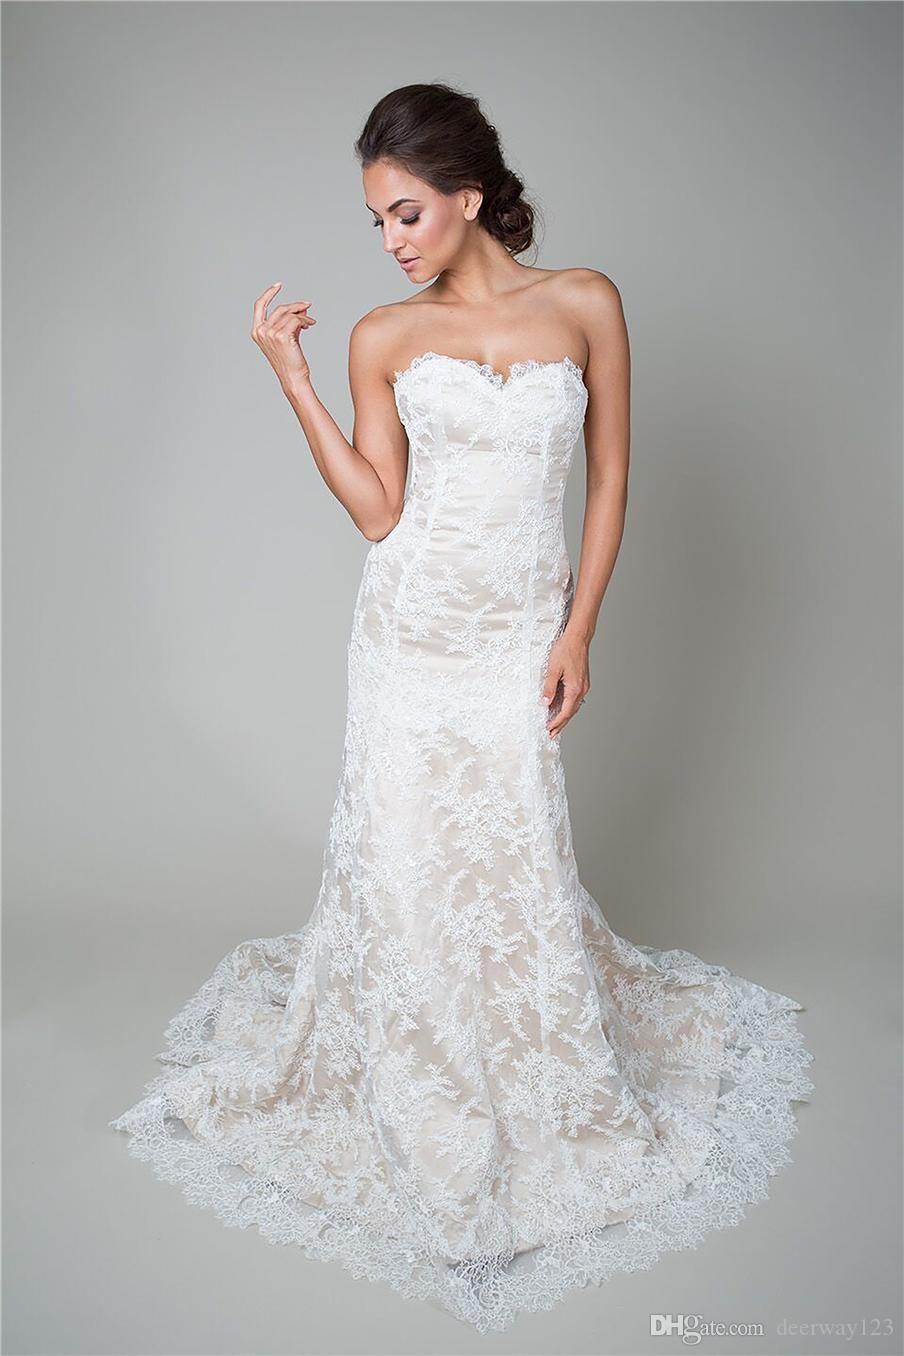 trumpet style wedding gown champagne base with corded lace a pinched  sweetheart neckline low back covered buttons bridal dress knee length  wedding